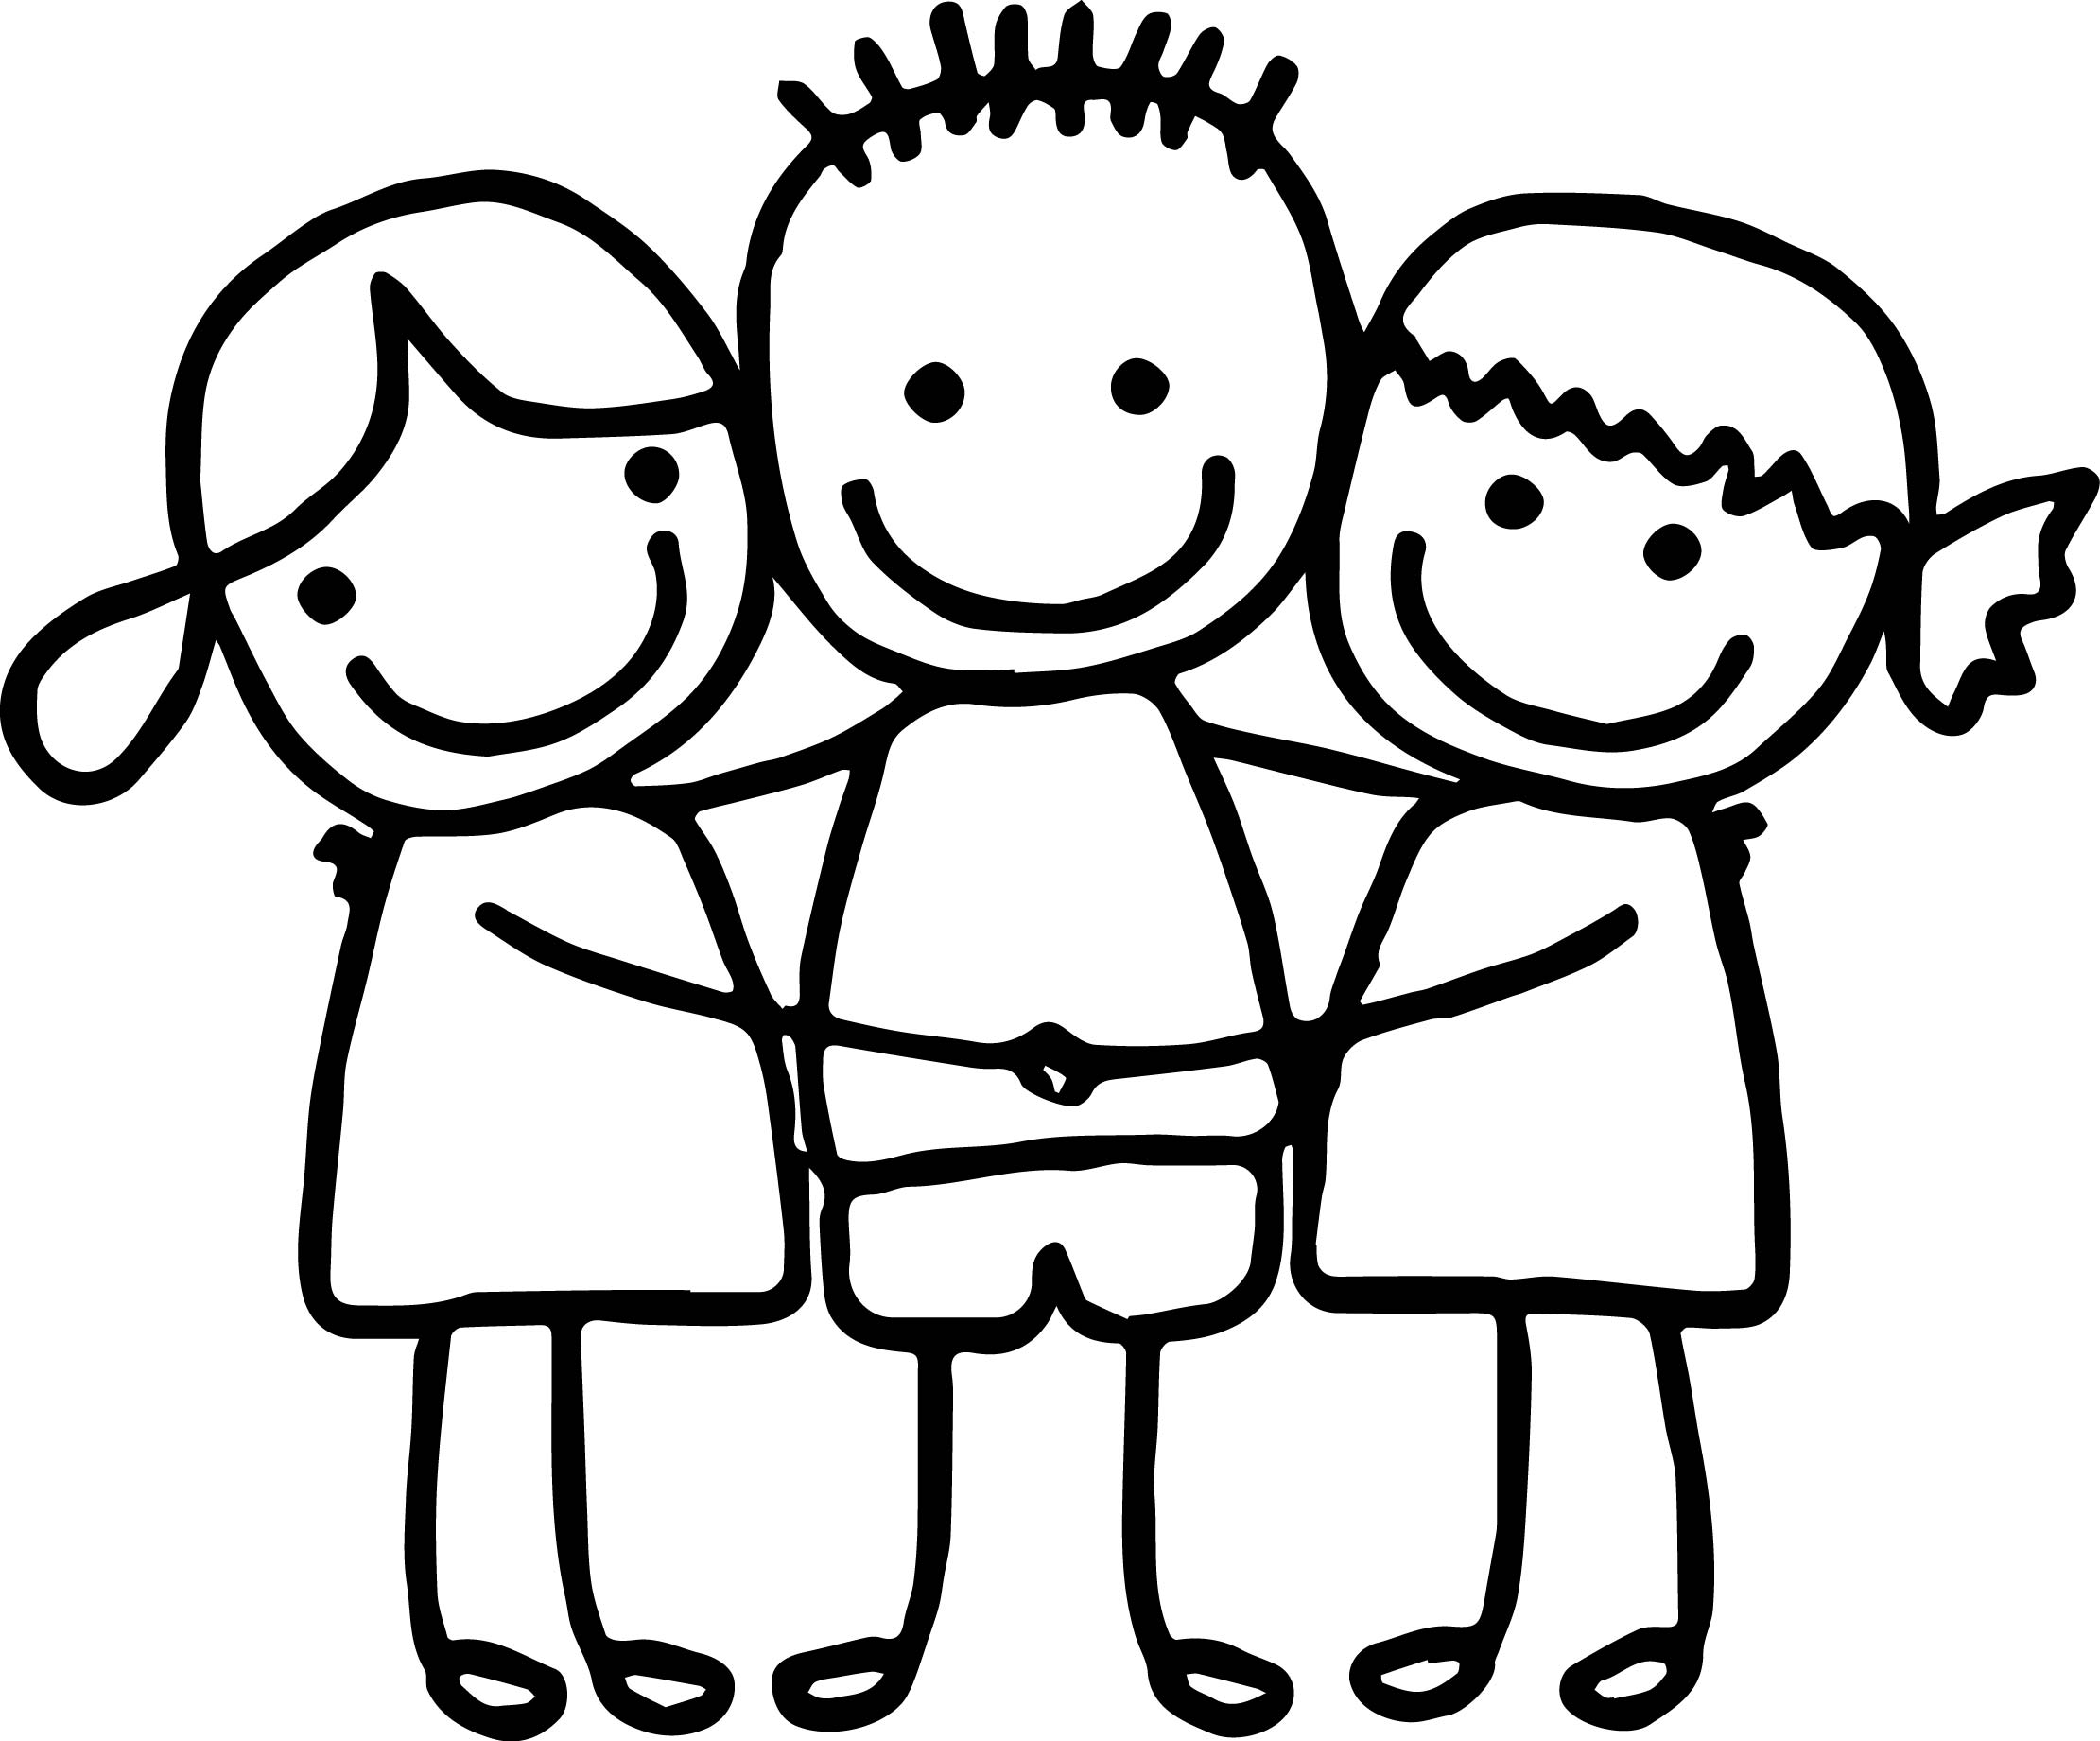 coloring clipart for kids best friends coloring pages best coloring pages for kids clipart coloring for kids